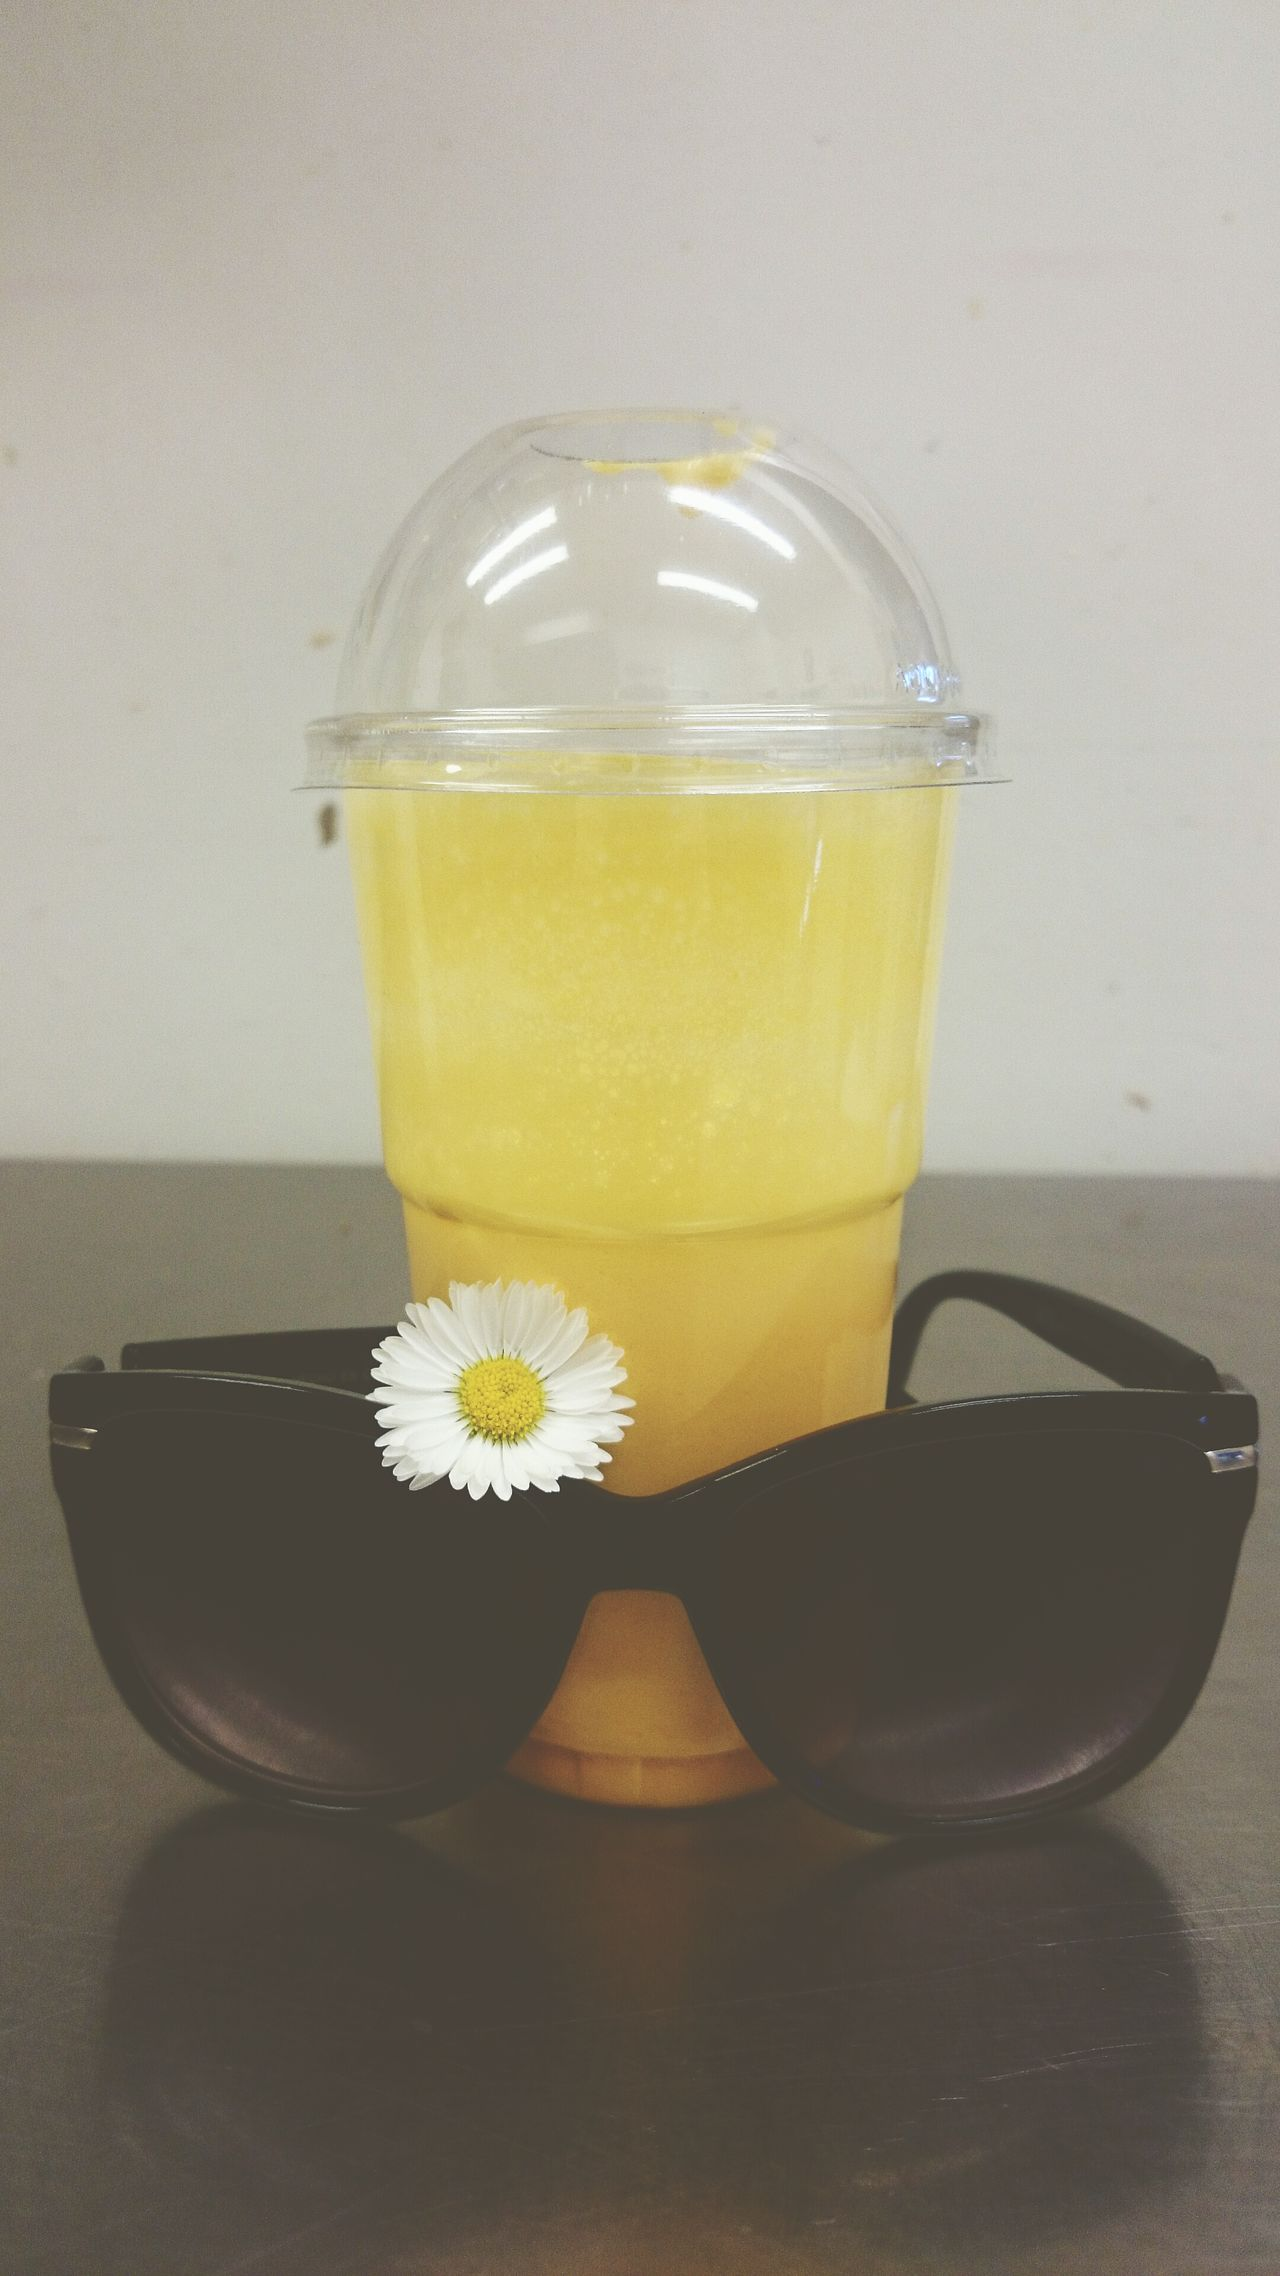 Sun Mood Of The Day Sunglasses :) Milkshake Feeling Good Just Something Love My Job Colours Good Morning Sunclasses Smoothie Jellow